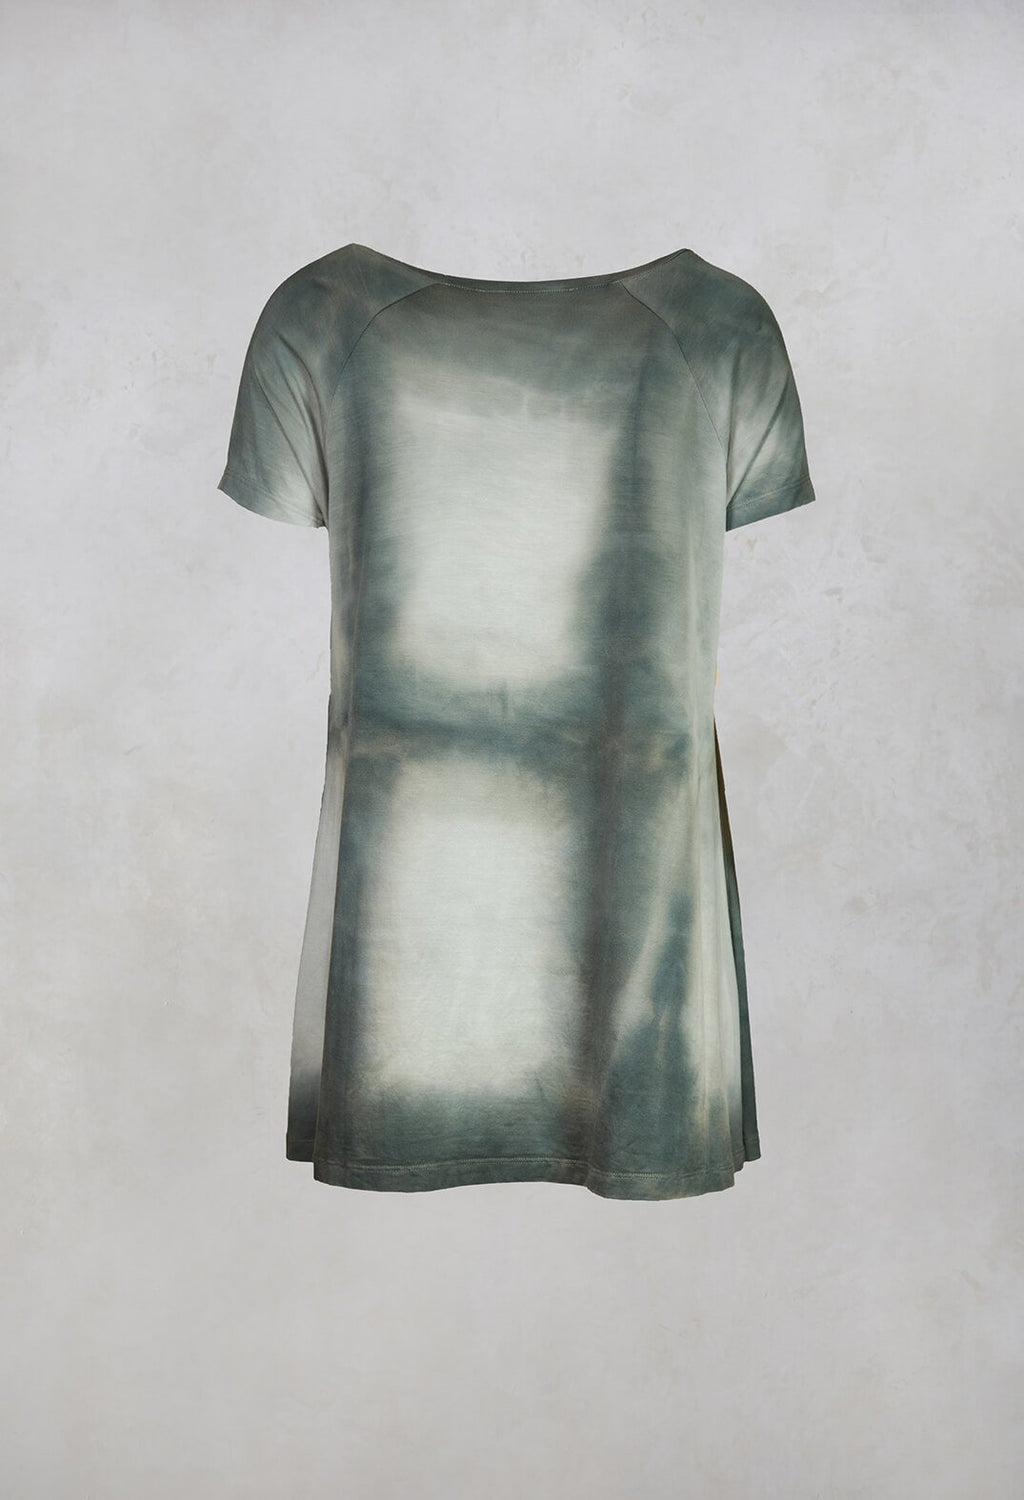 Albands T-Shirt in Sage